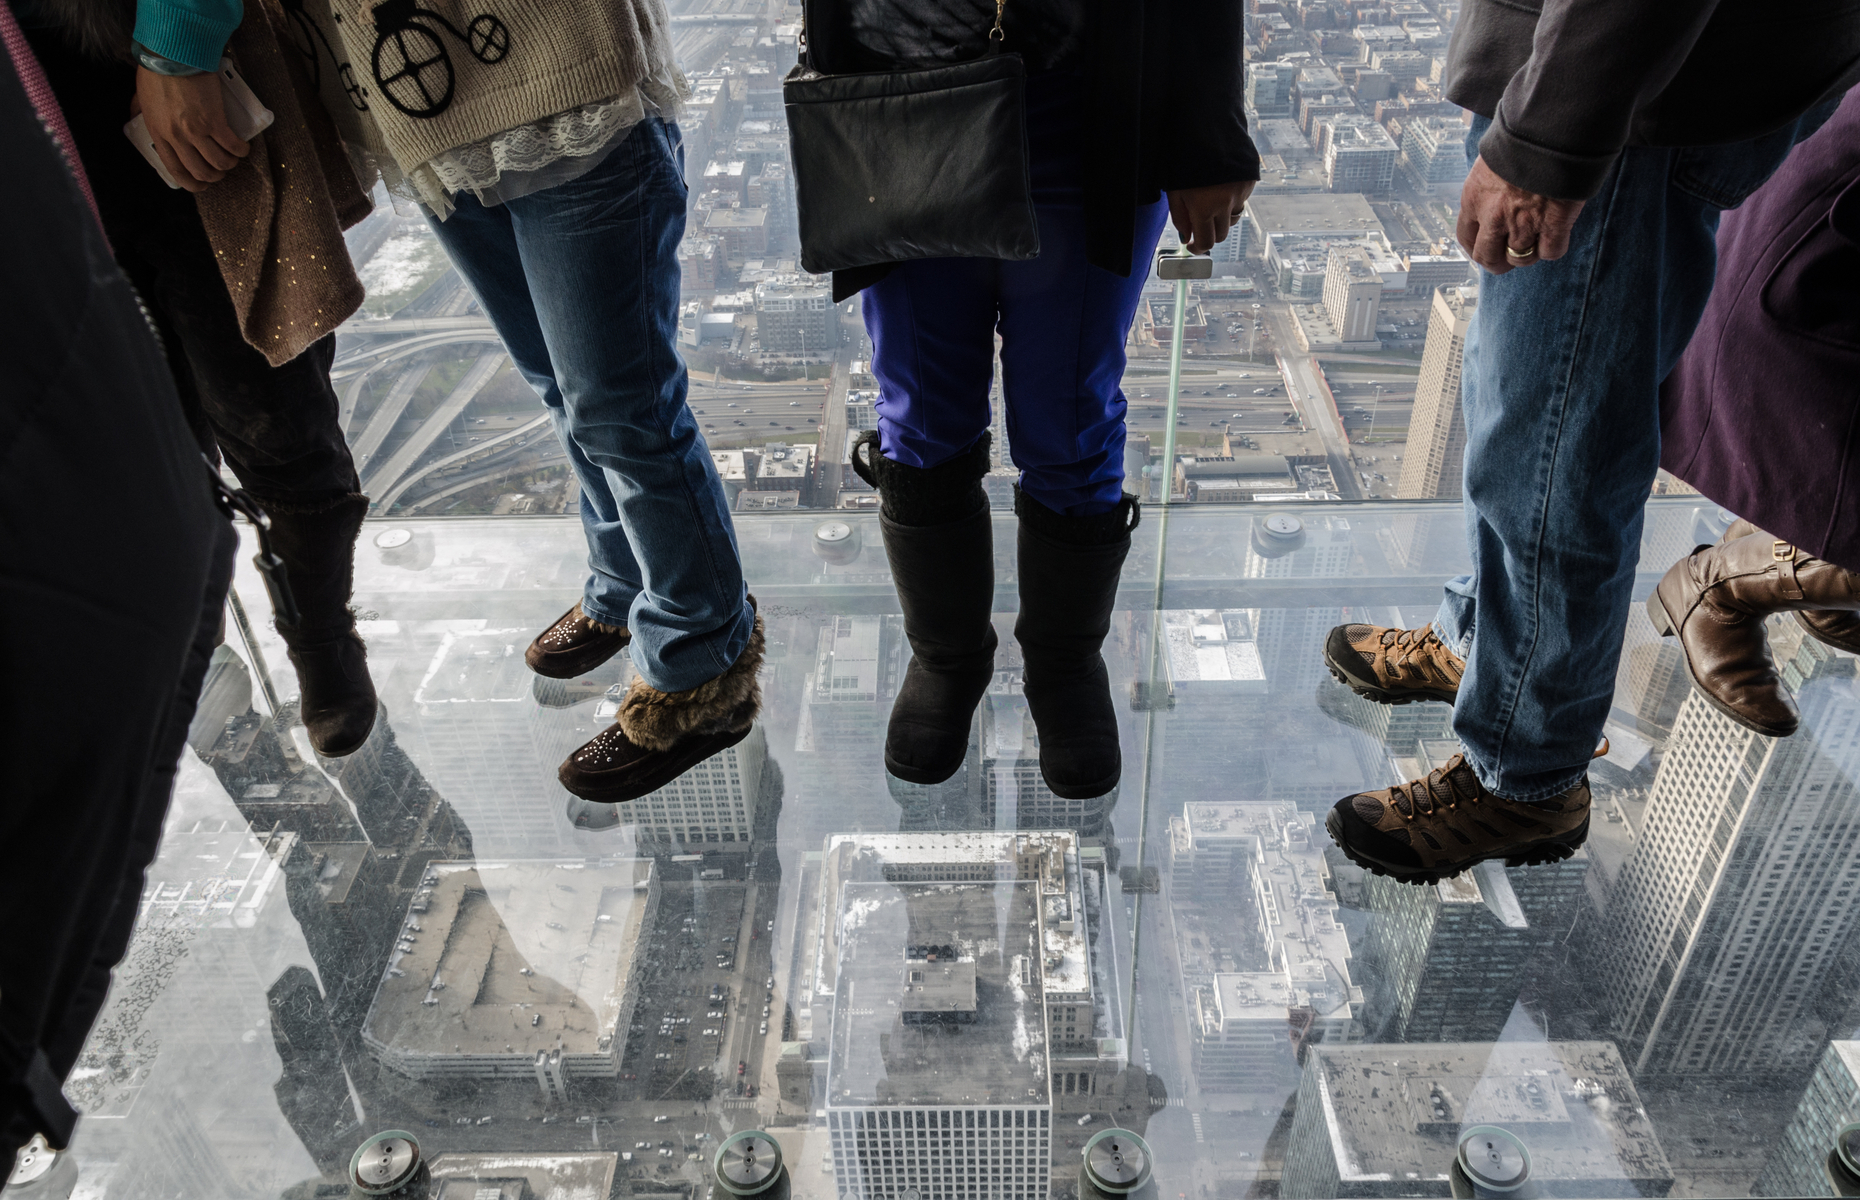 Slide 10 of 16: Chicago's famous Willis Tower invites visitors to experience The Ledge, a balcony made of floor-to-ceiling glass. On a clear day, you can see as far as 80 kilometres (50 miles)—a view that spans four states! The Ledge is on the 103rd floor at a height of 412 metres (1,352 feet), and it's a popular spot for marriage proposals.